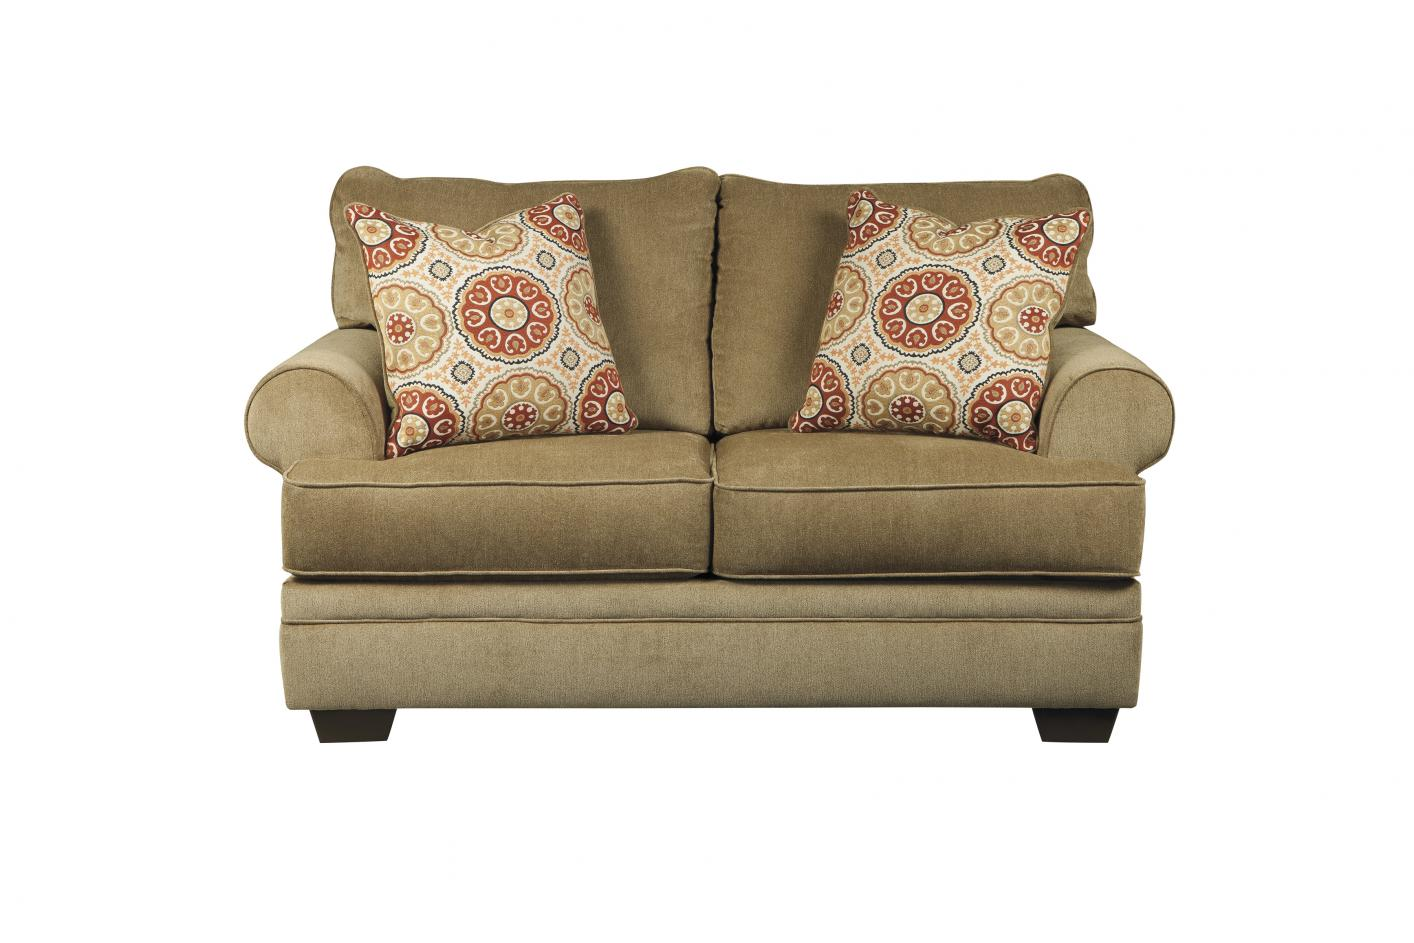 fabric successfully spaces added qty loveseat grey david has living pdp been to your cart